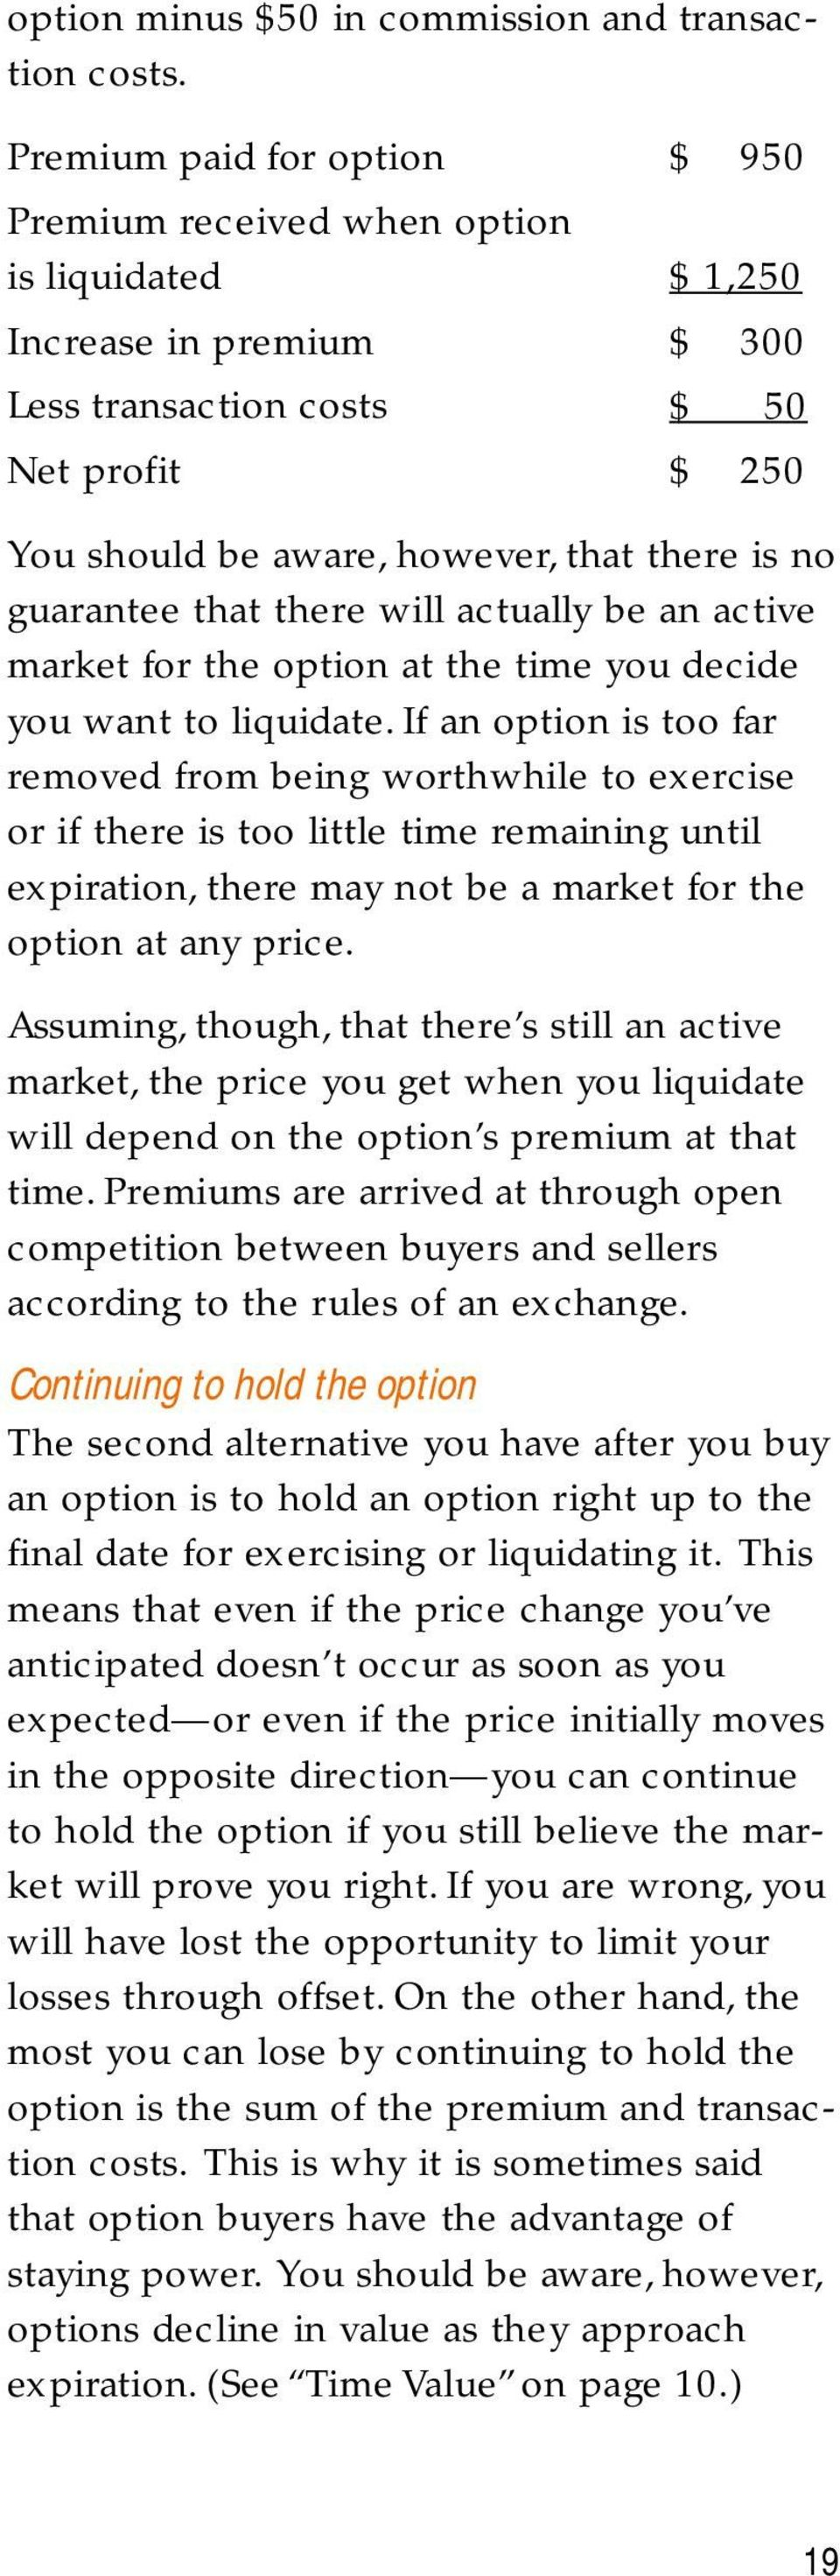 guarantee that there will actually be an active market for the option at the time you decide you want to liquidate.